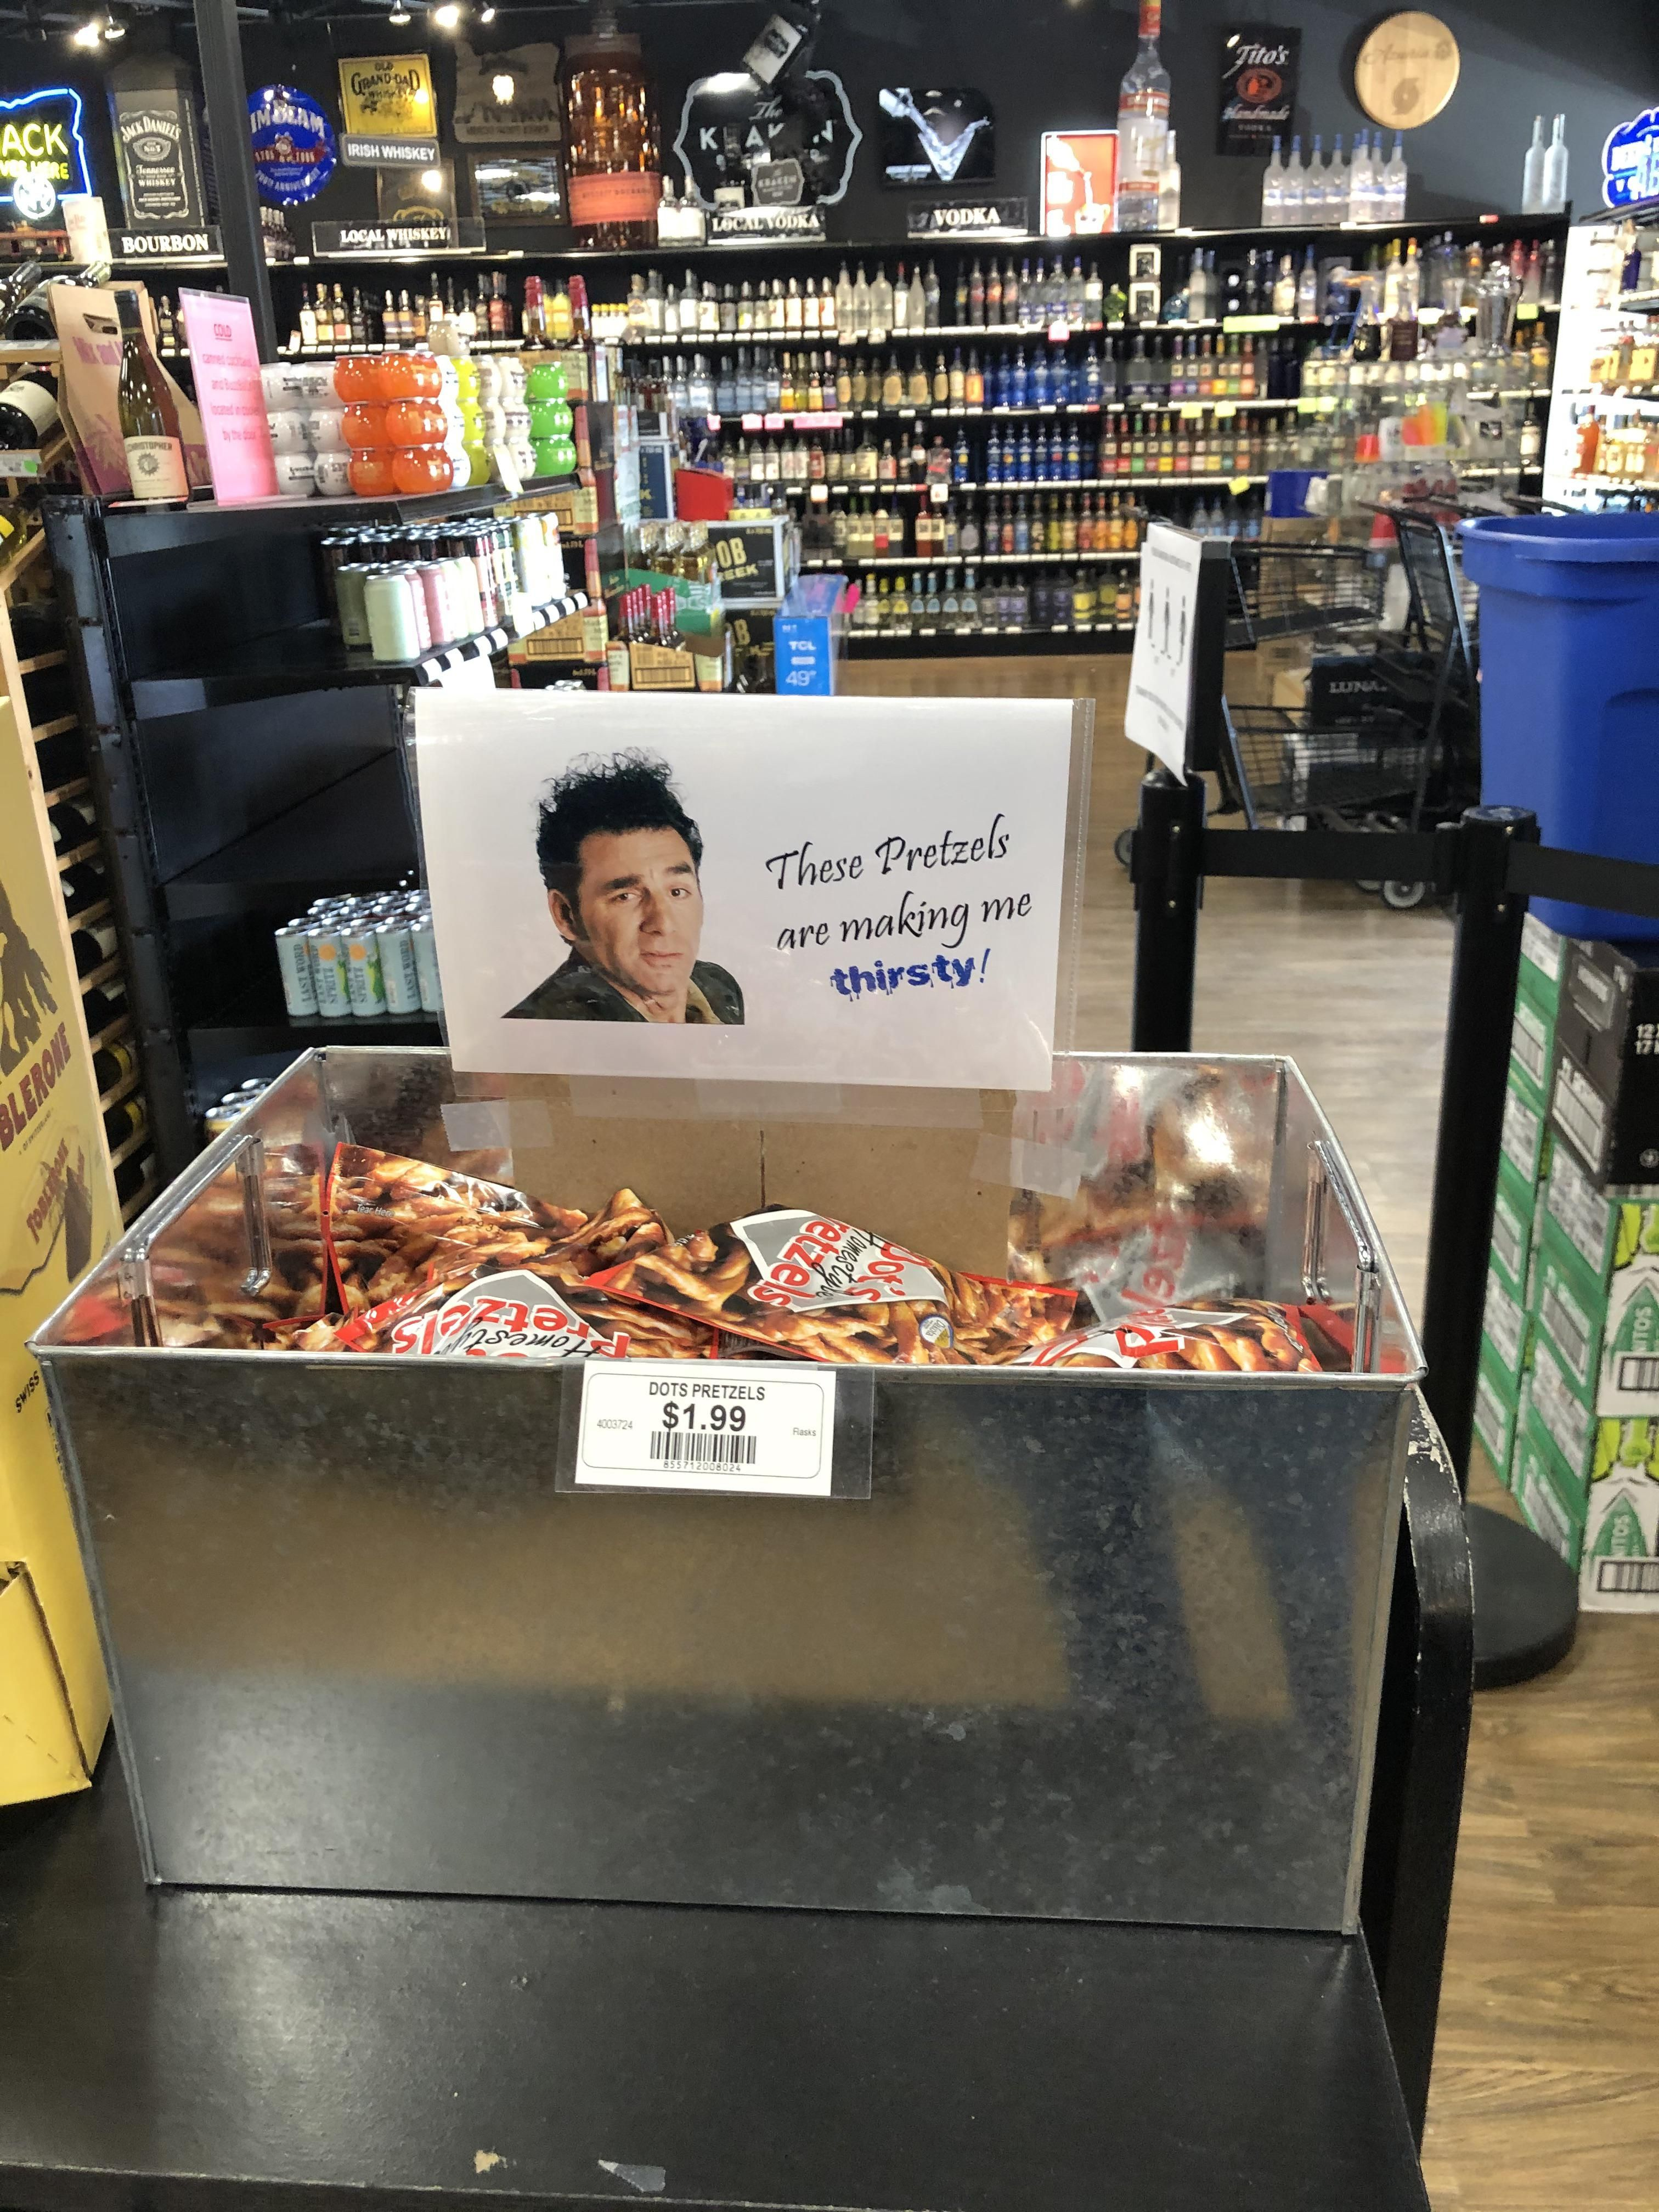 Sign found at my local liquor store.